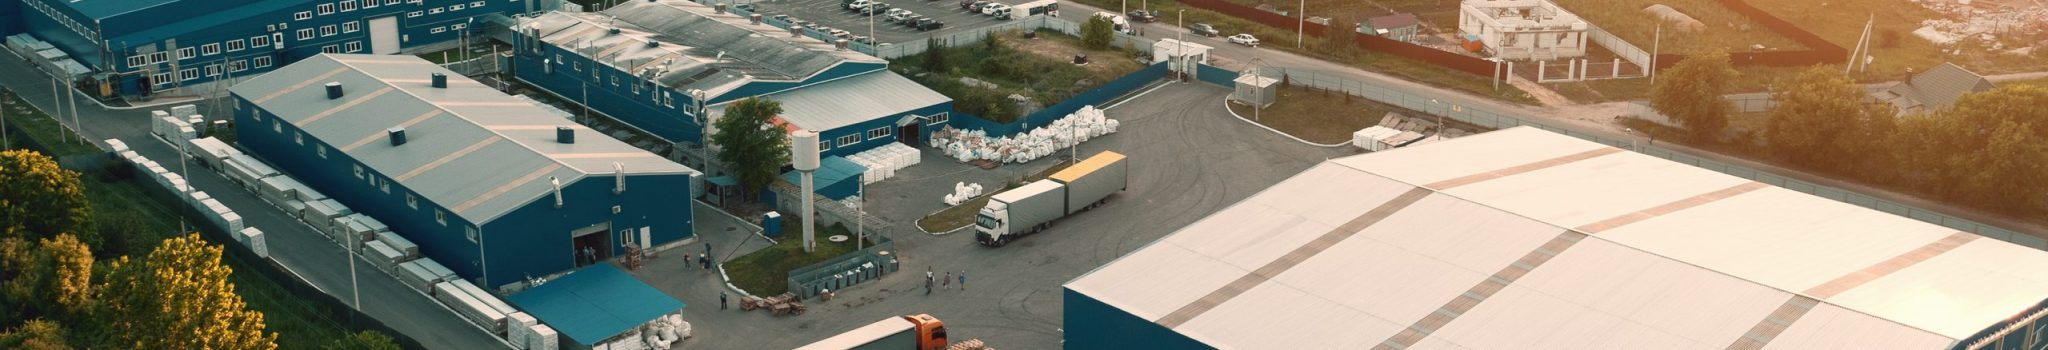 Aerial,View,Of,Warehouse,Storages,Or,Industrial,Factory,Or,Logistics